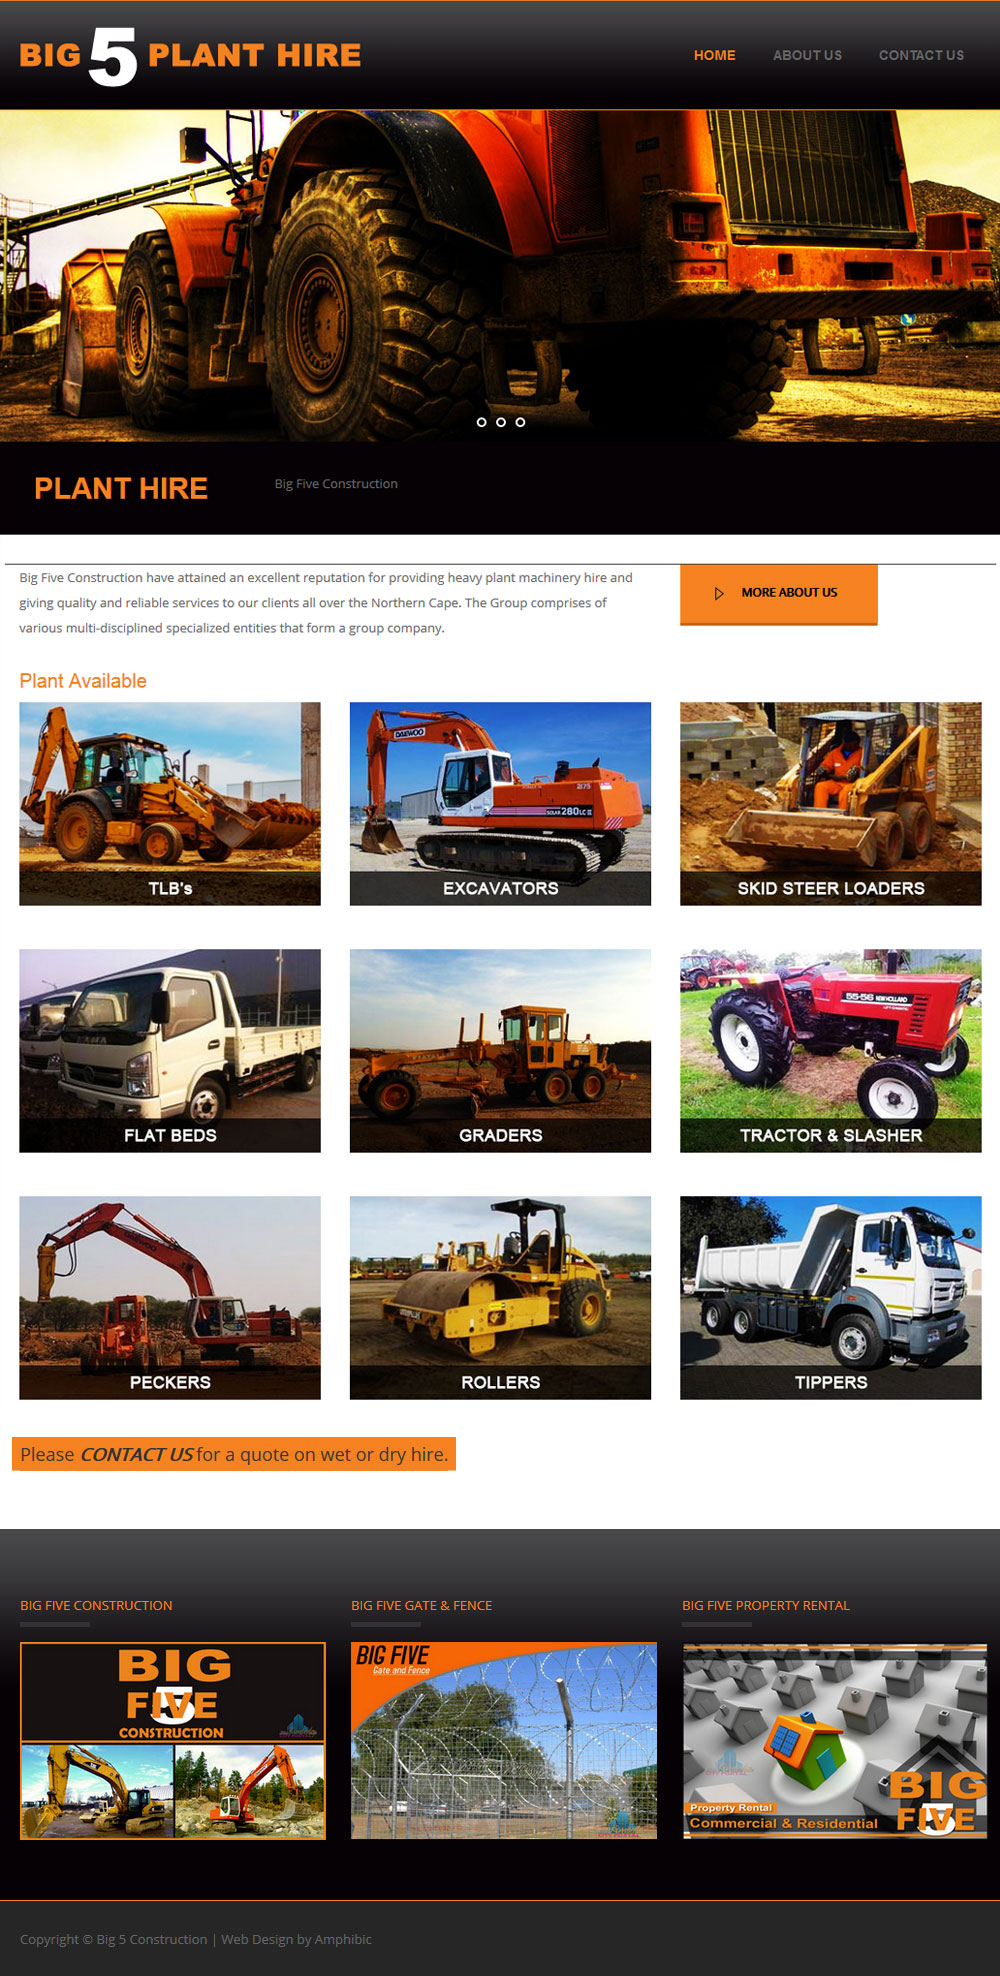 Big 5 Plant Hire – Website